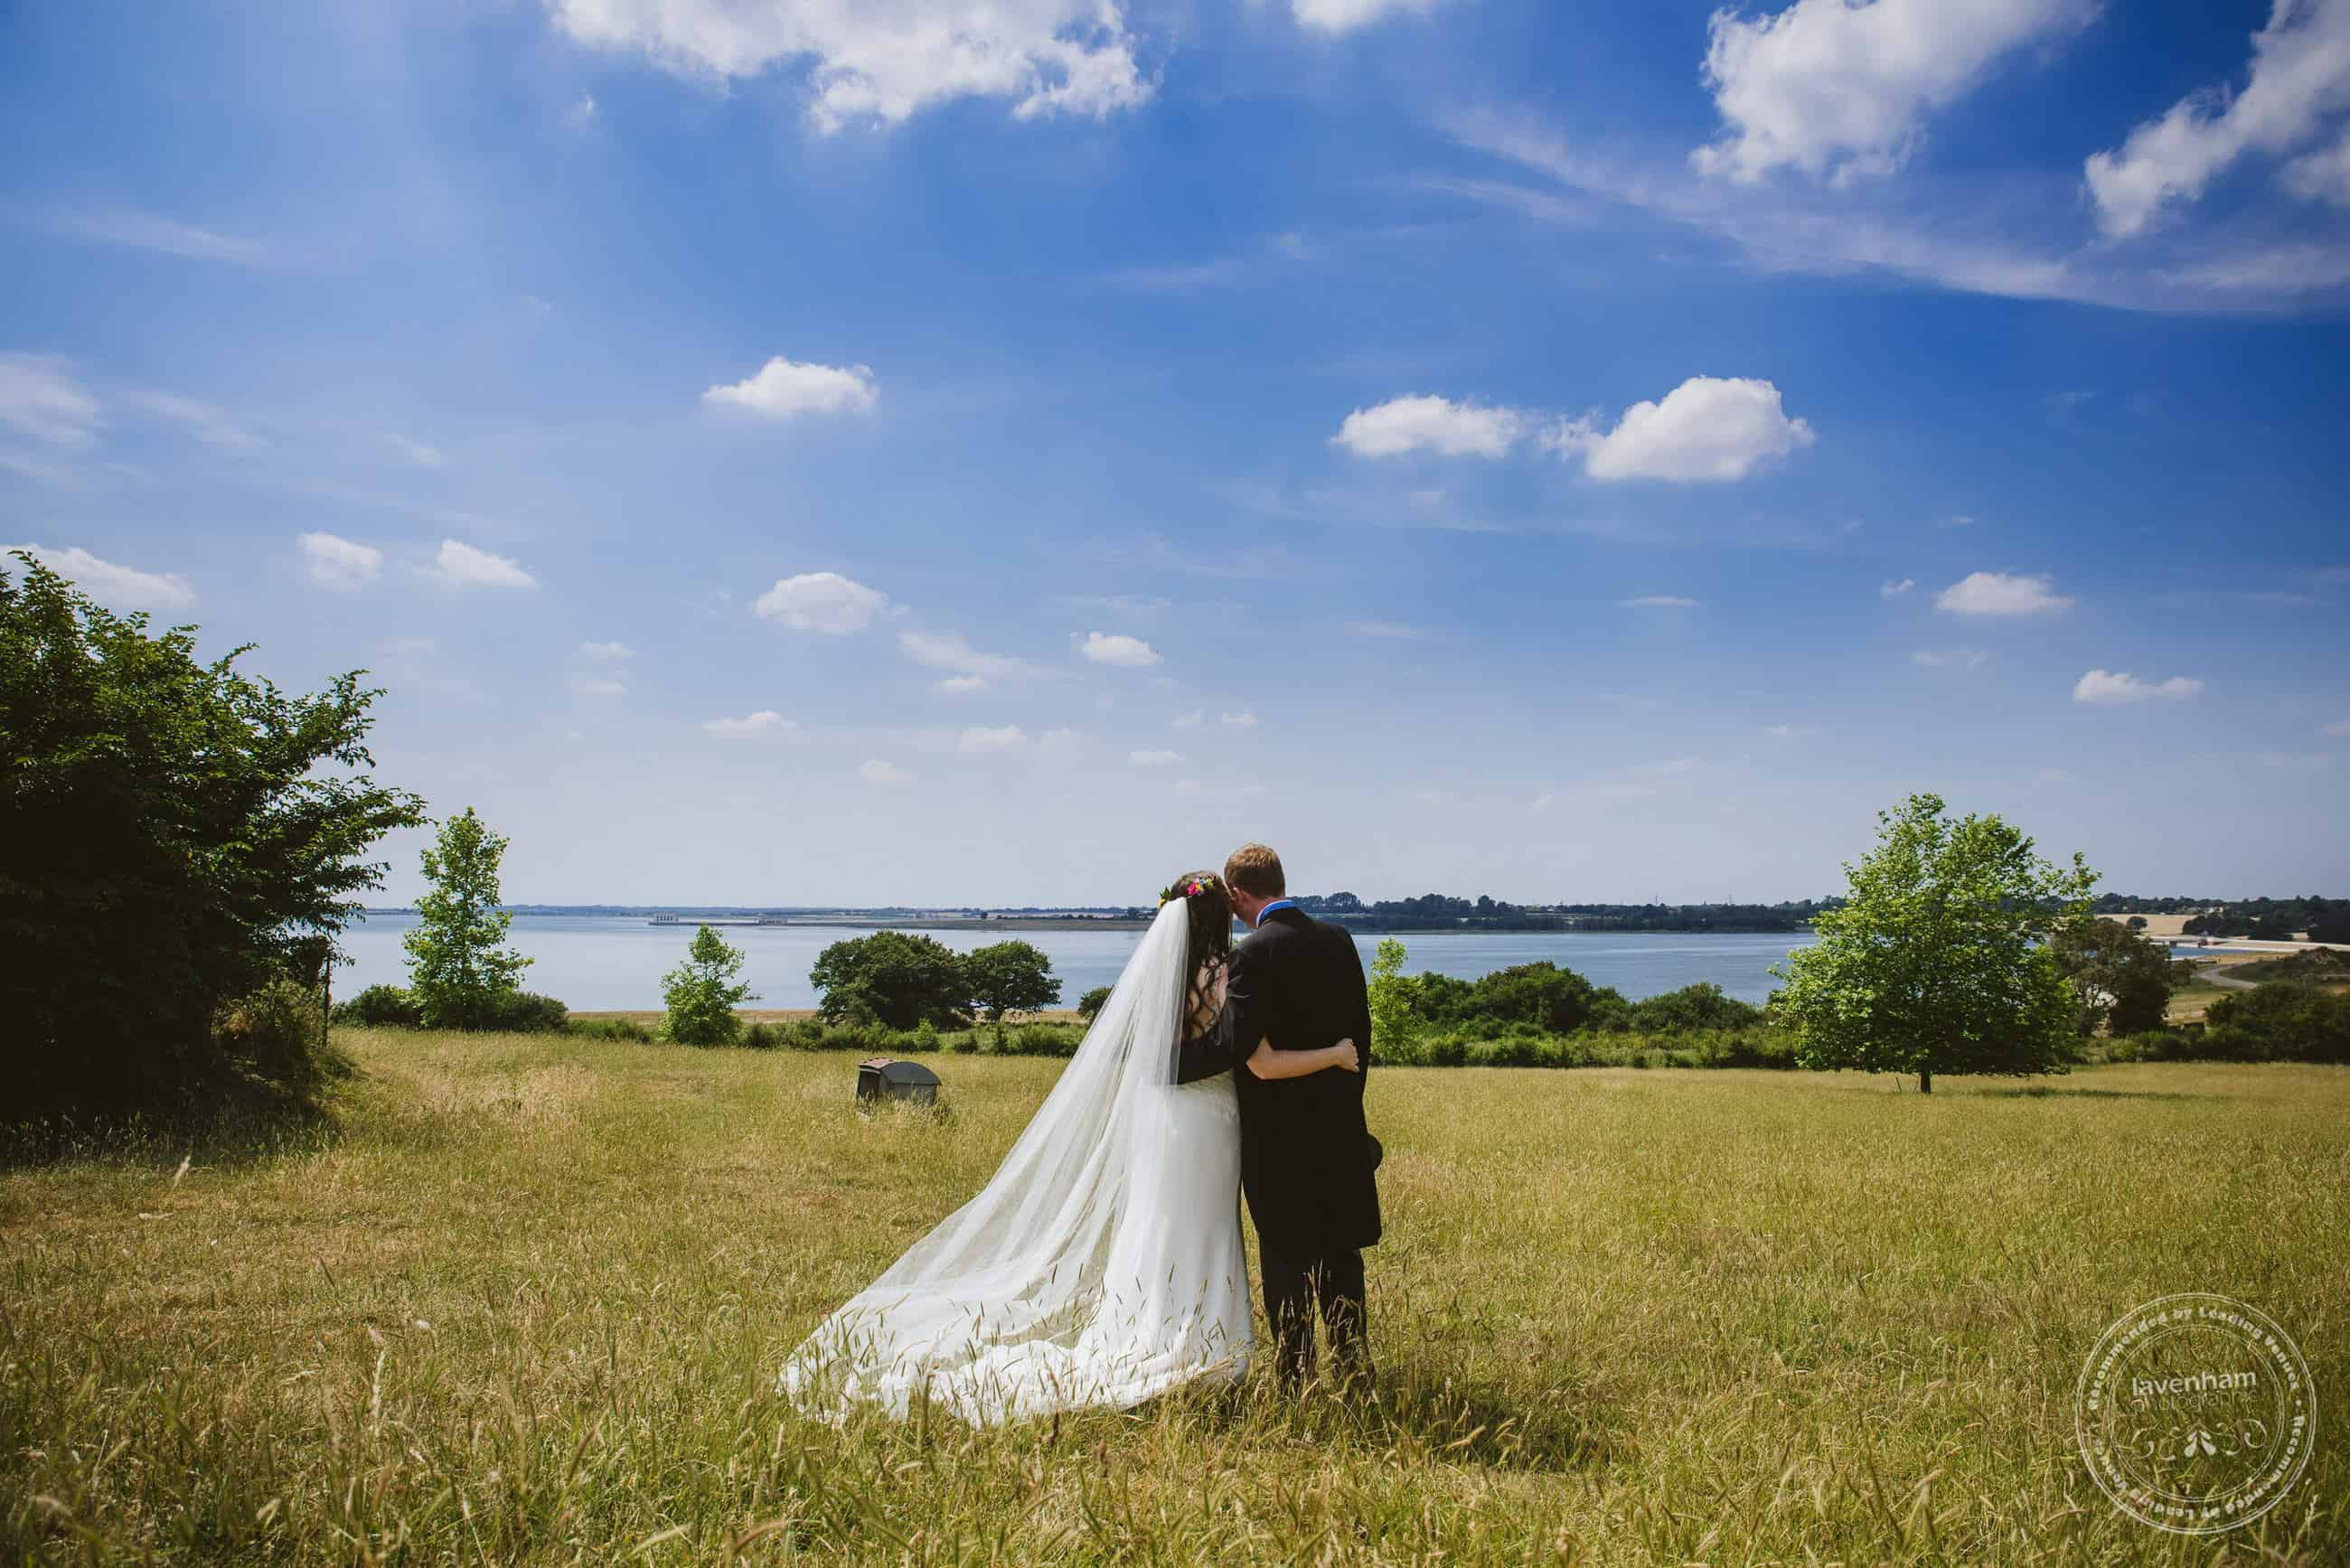 Great blue sky, meadow and lake. This photo really has a relaxed, timeless feel to it!